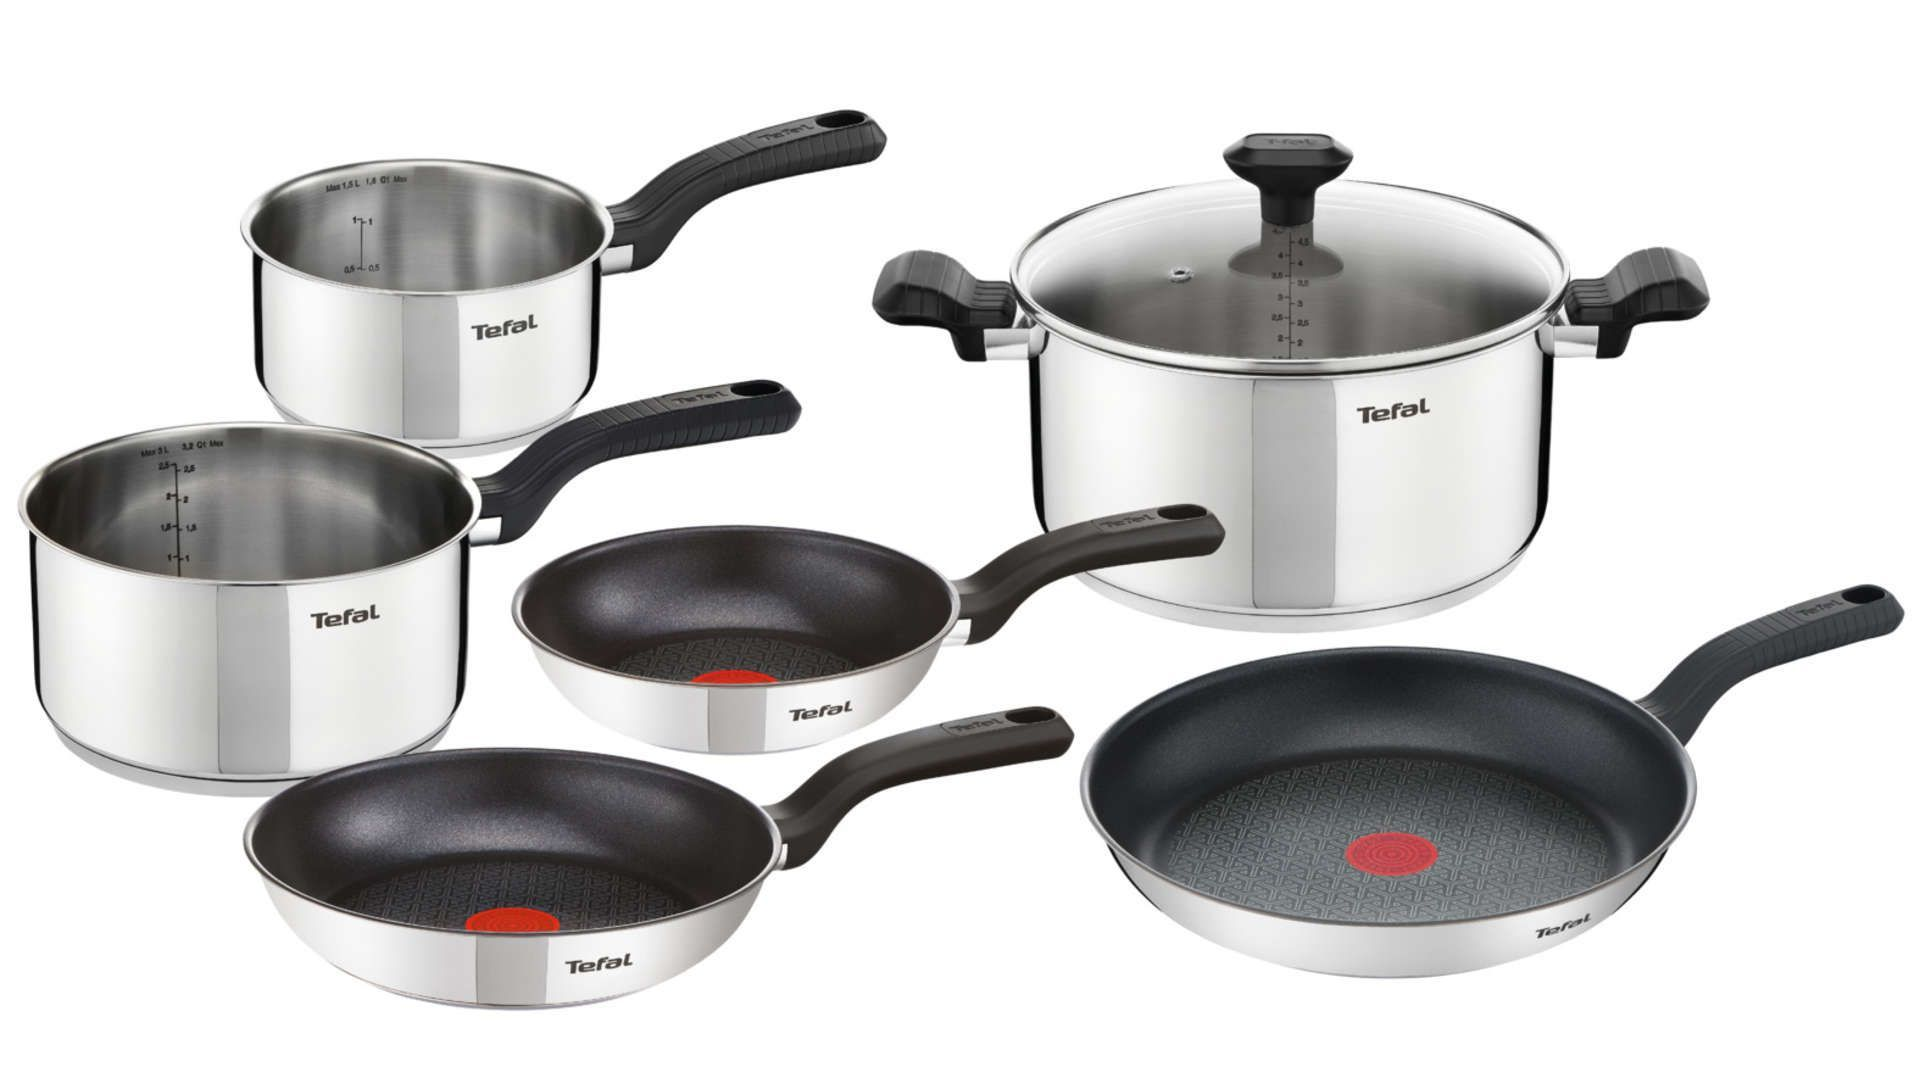 Cookware All Hobs Except Induction Tefal 707997 In 2020 Cookware